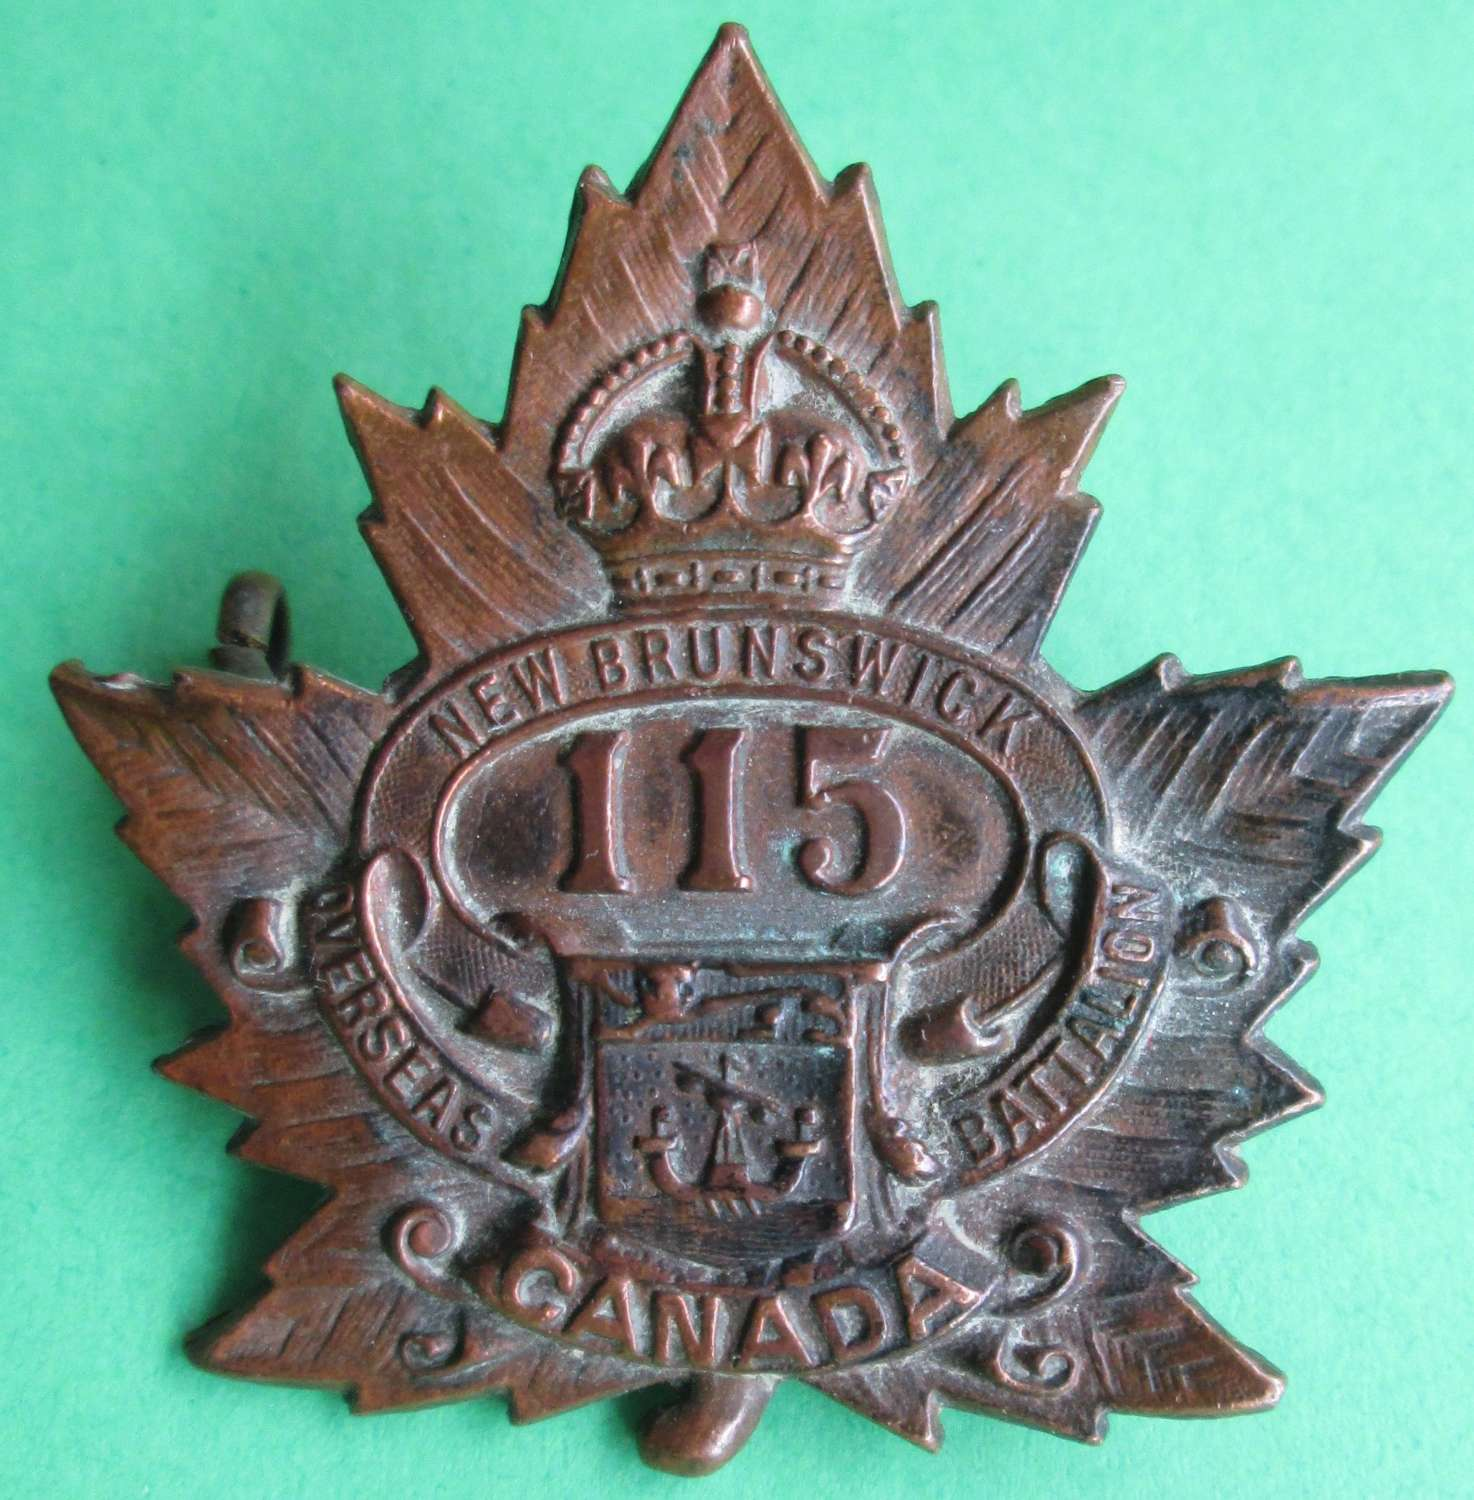 A CANADIAN 115TH INFANTRY BATTALION BADGE